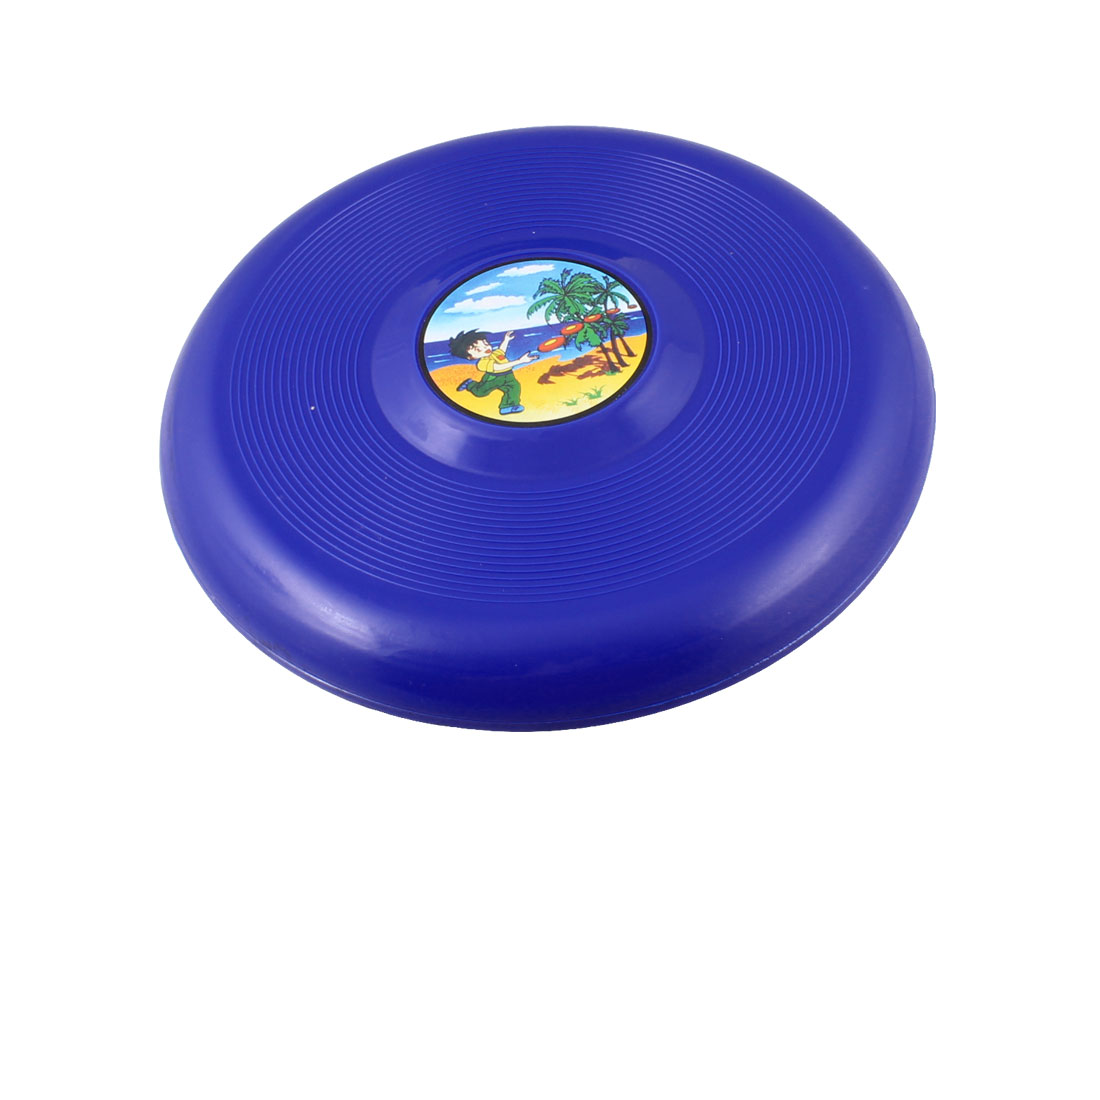 "Child Blue Plastic 7.3"" Diameter Flying Round Disc Frisbee Toy"